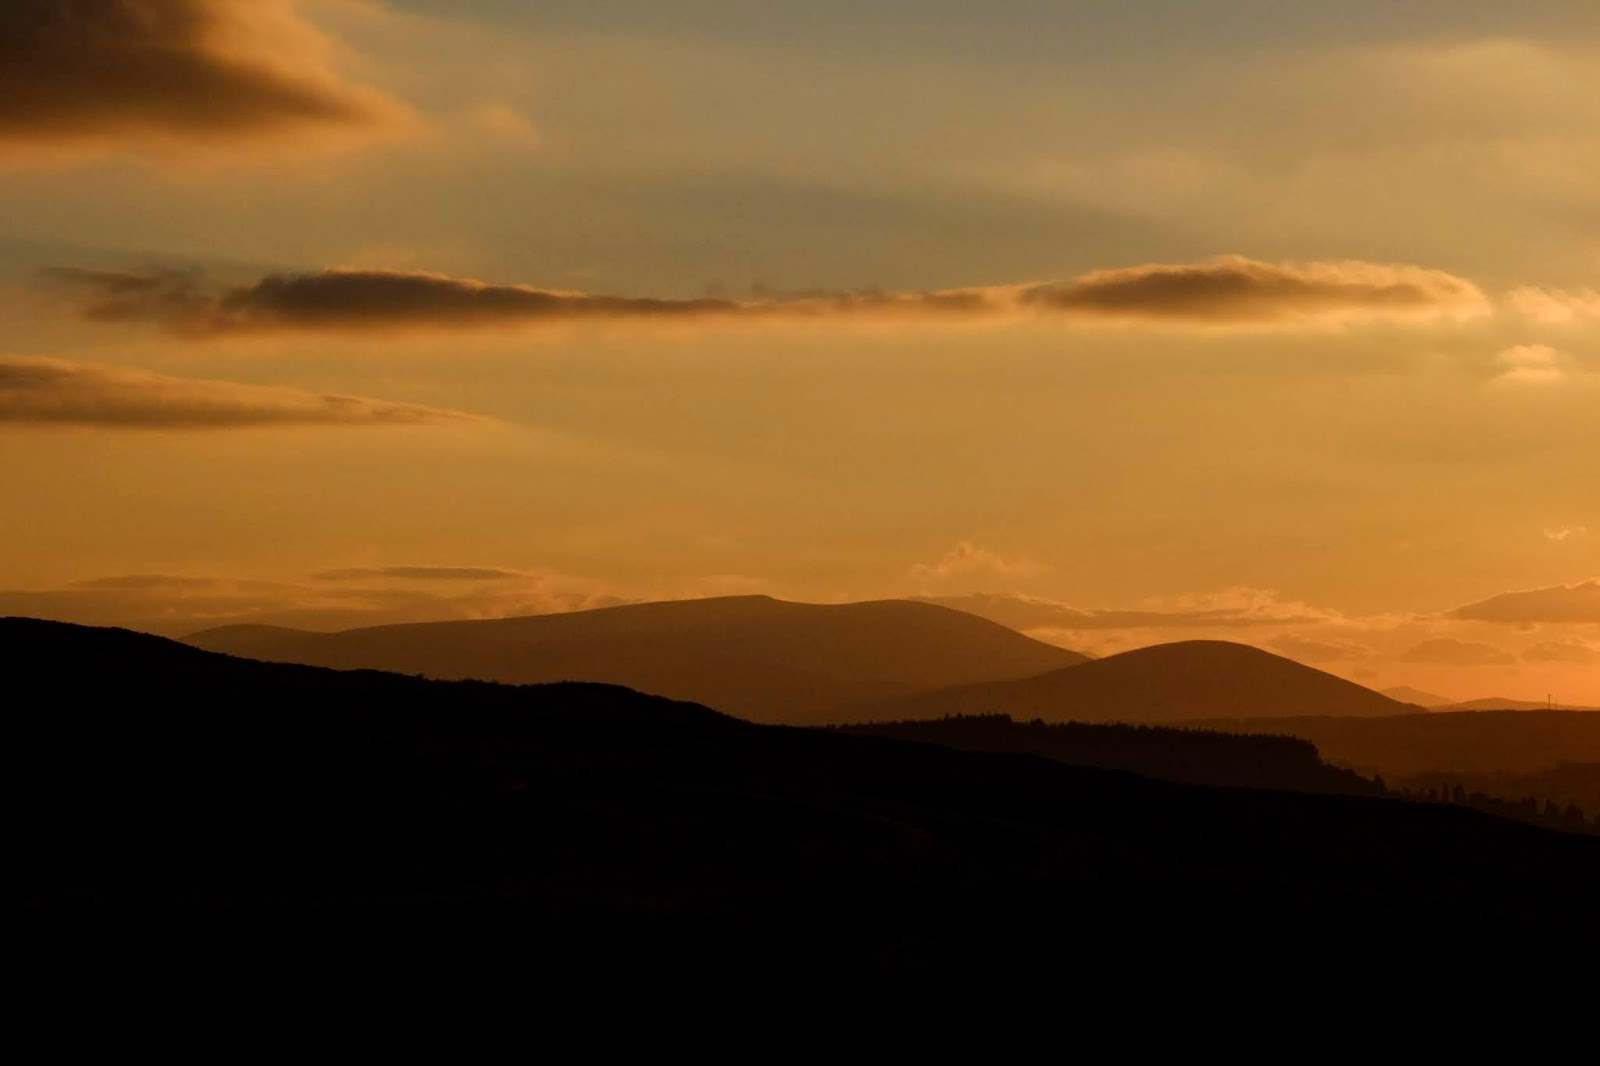 Sunset in the Boggeragh Mountains, Co.Cork.